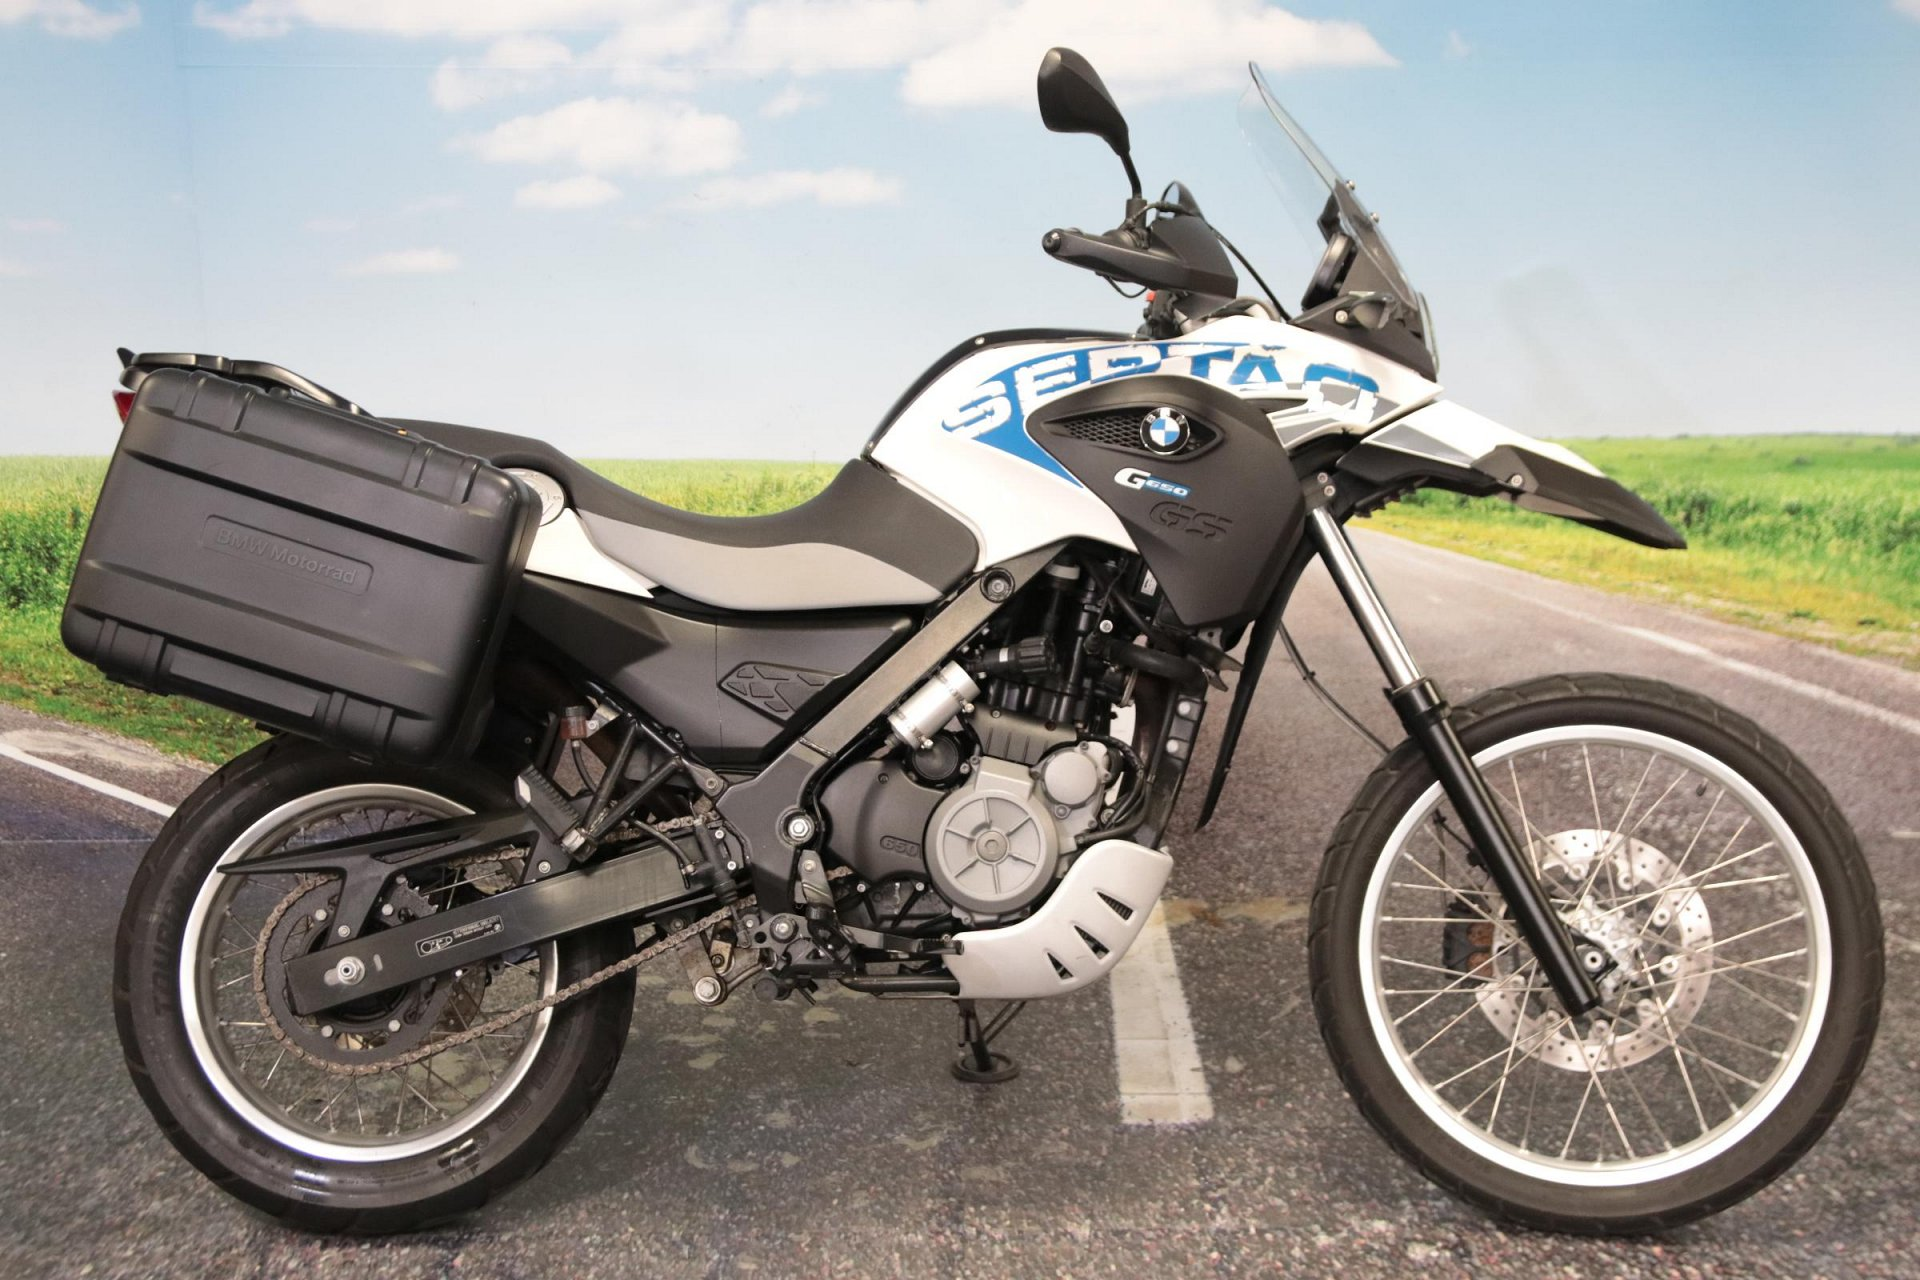 2013 BMW G650GS Sertao for sale in South Wales